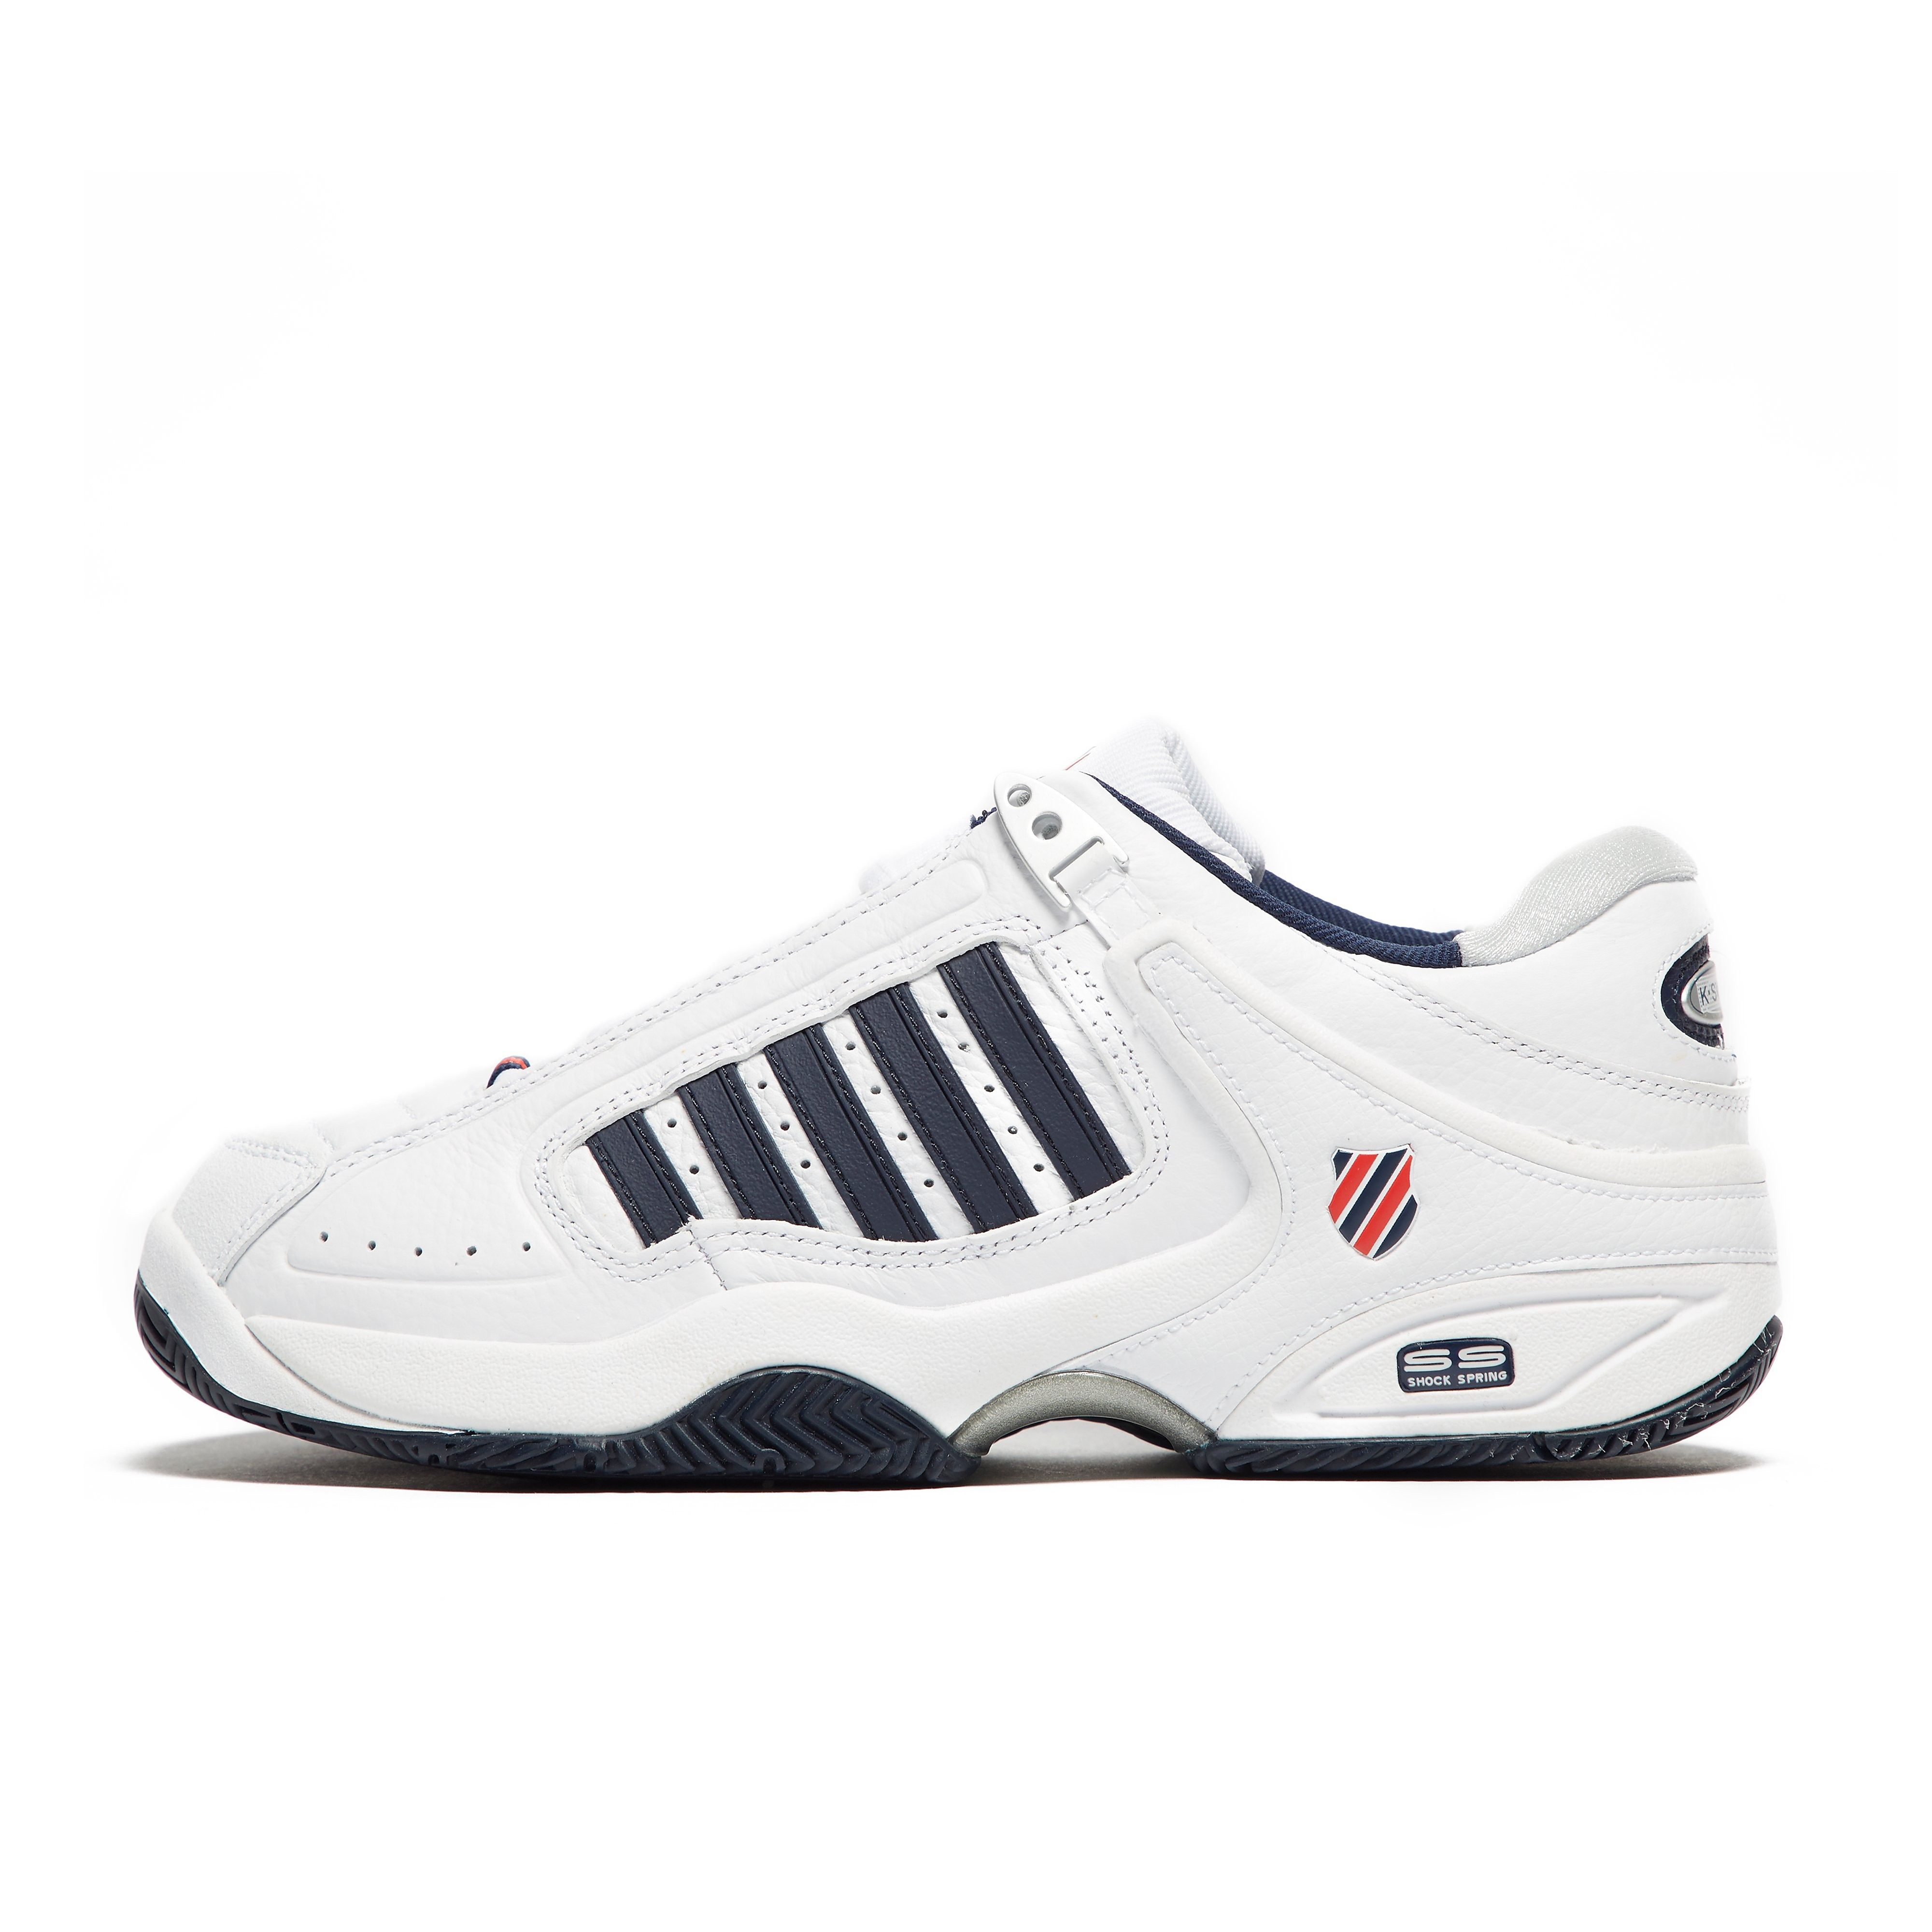 K-Swiss Defier RS Men's Tennis Shoes